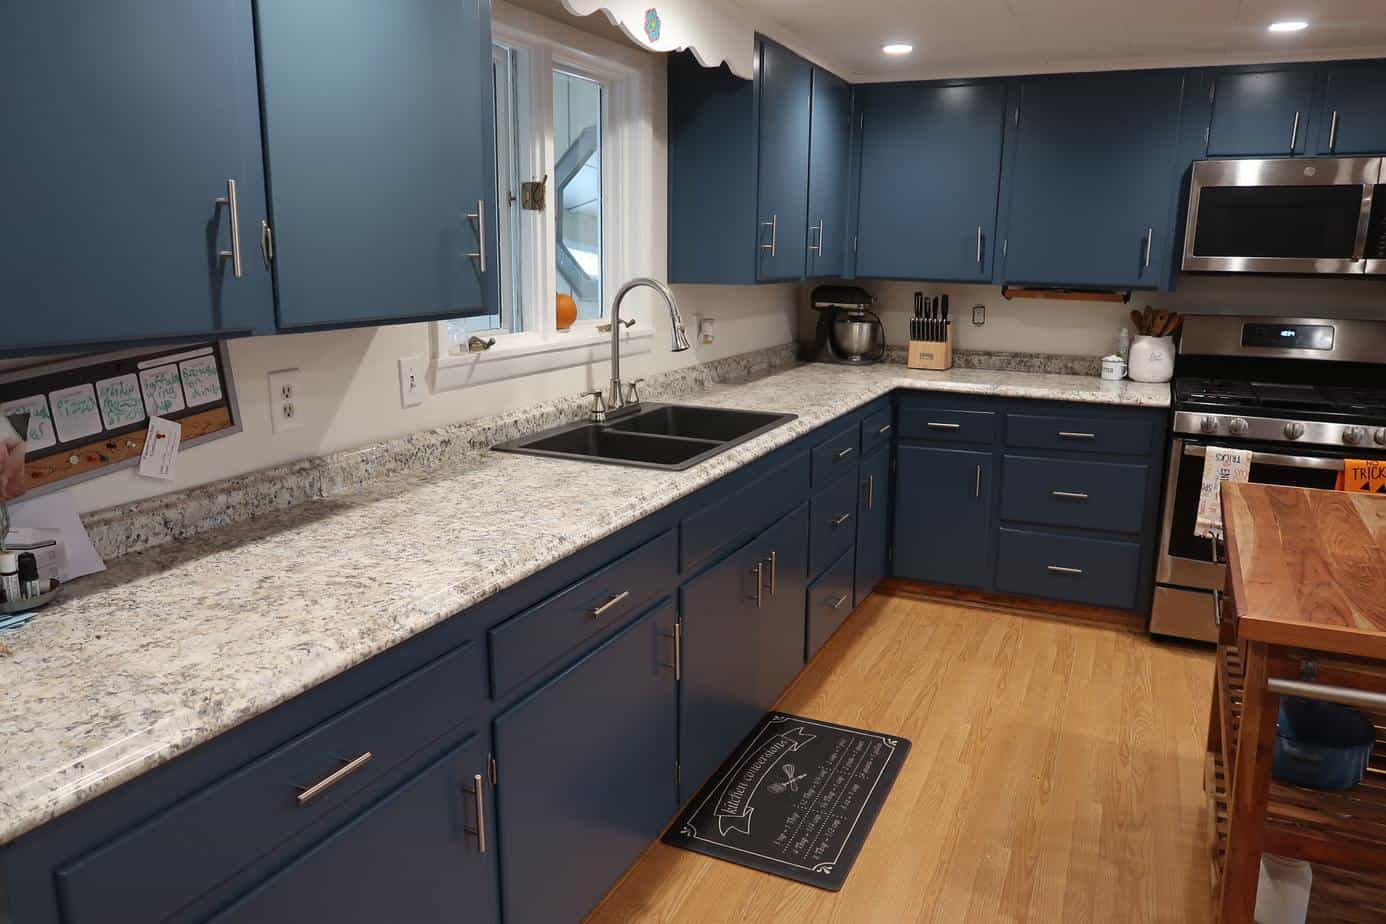 5 Diy Ways To Get New Countertops For Cheap The Frugal